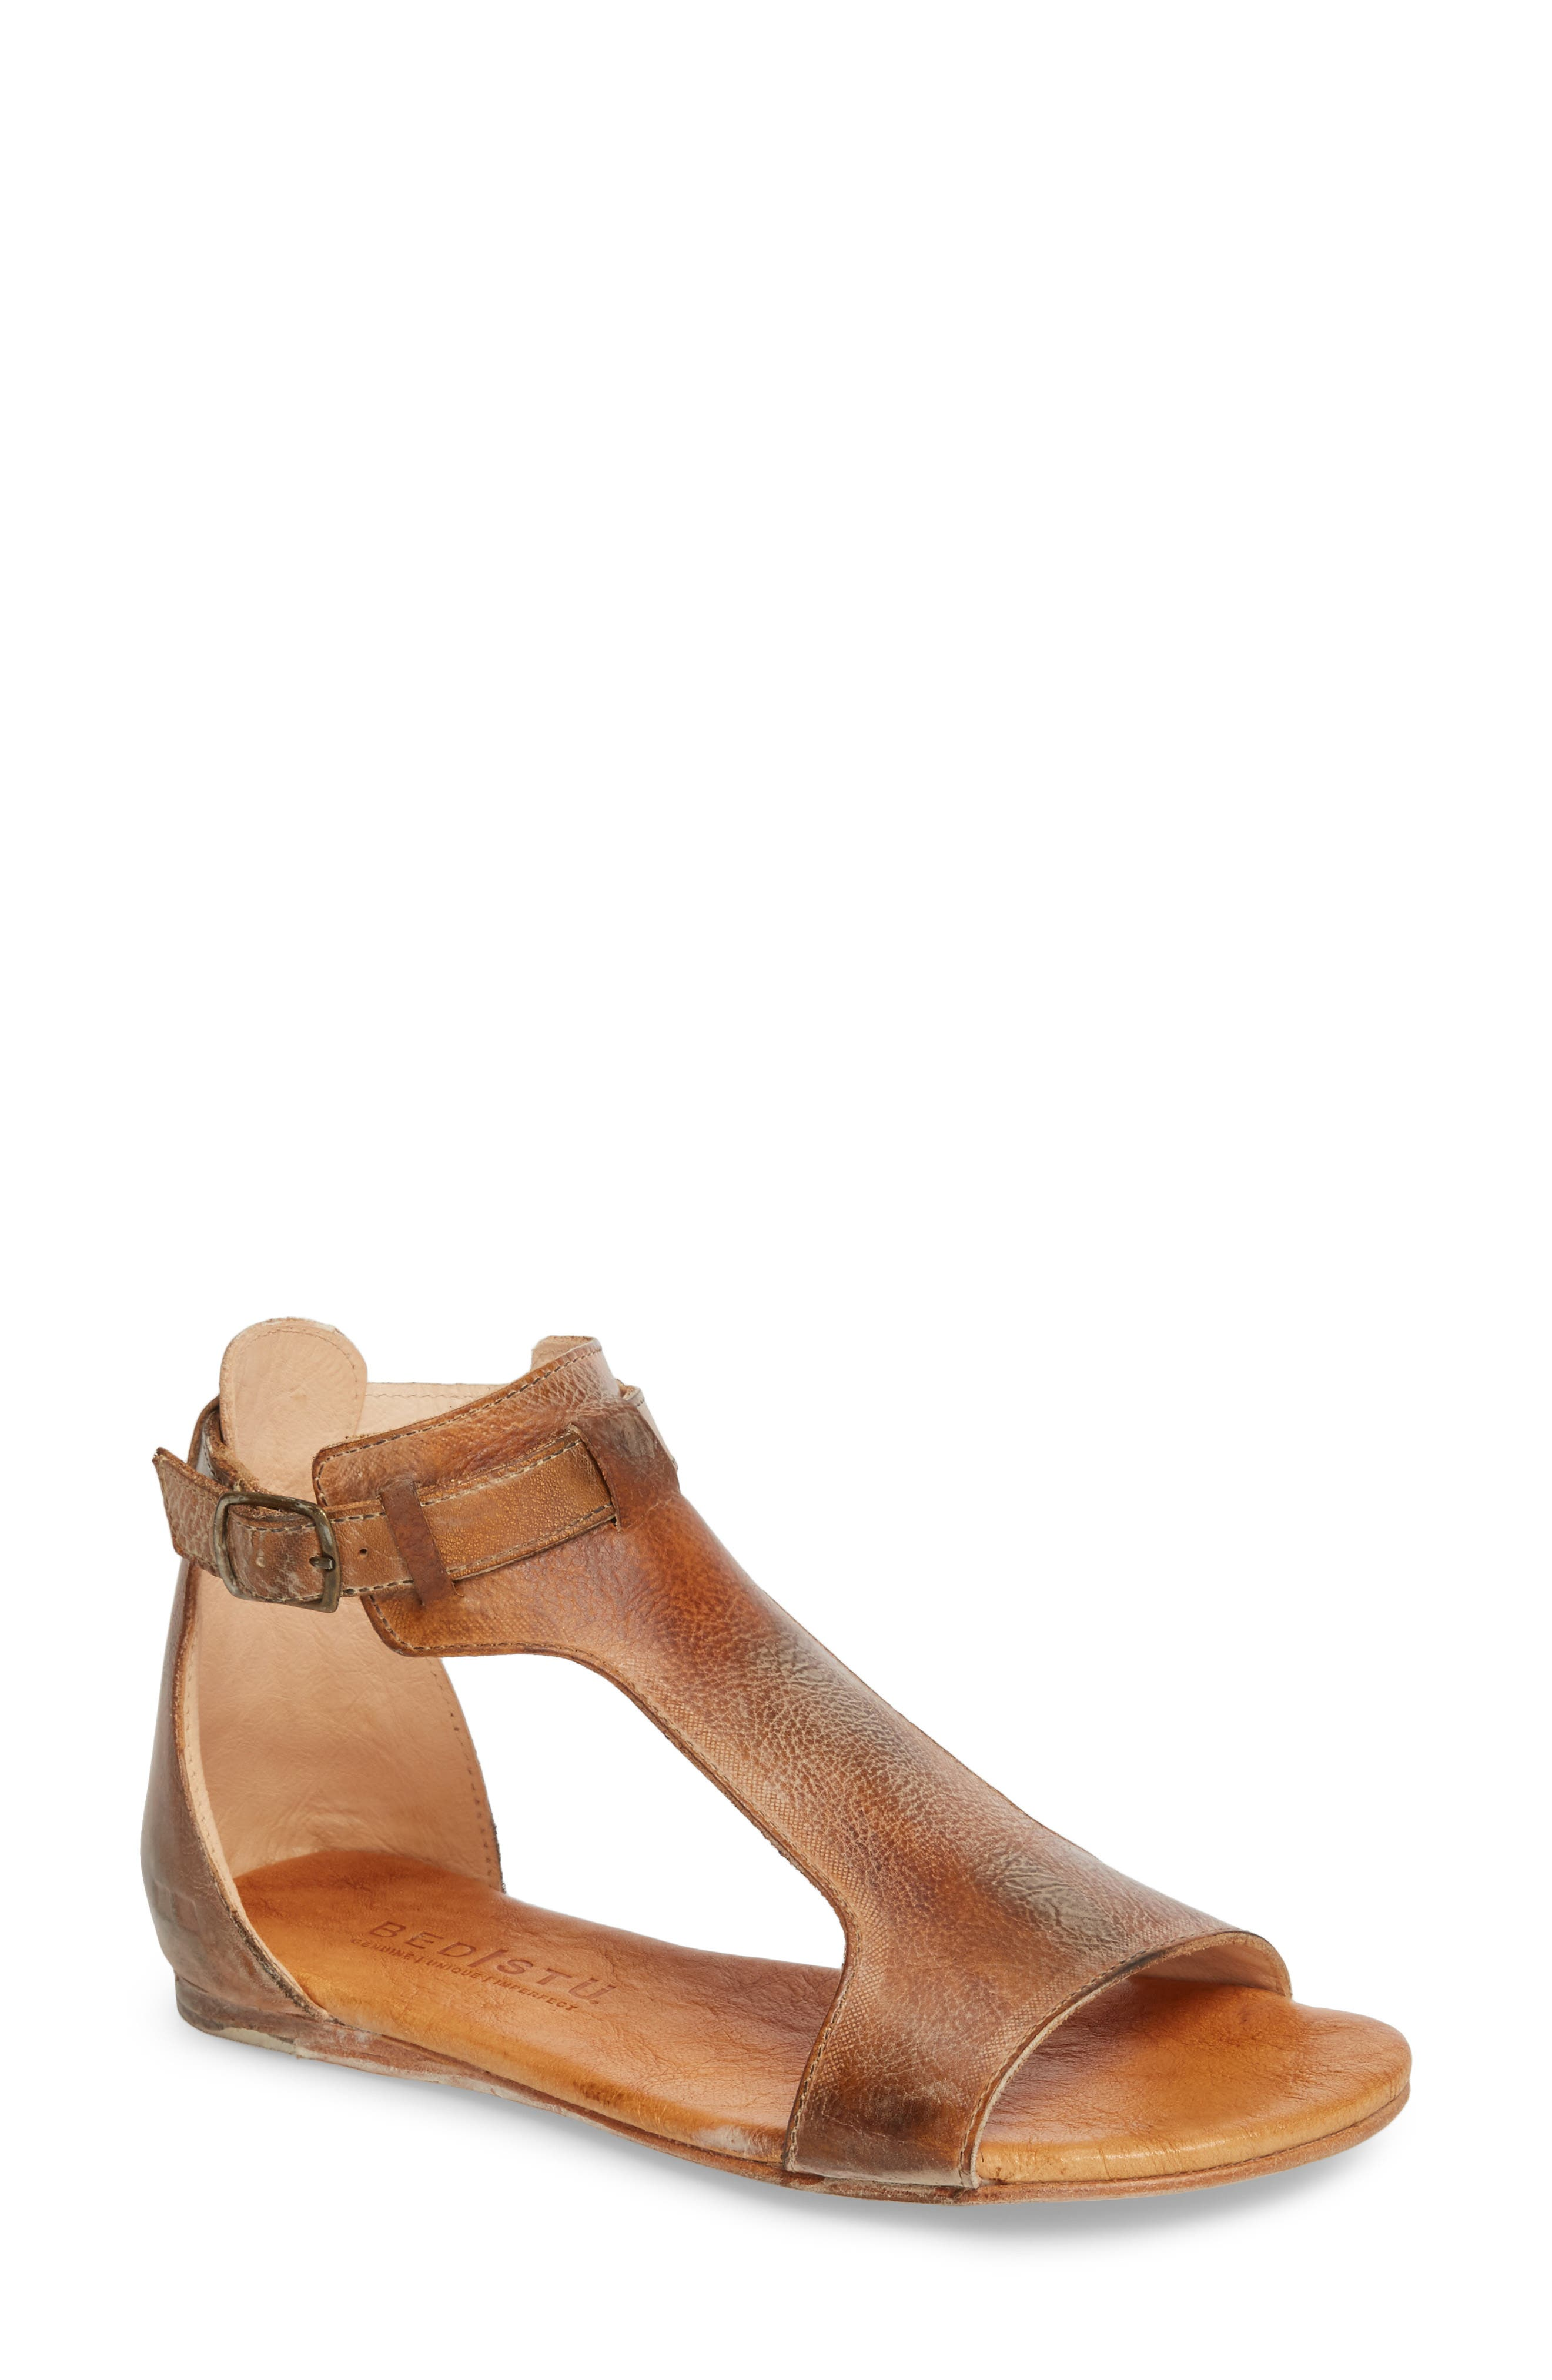 Bed Stu Sable Sandal (Women)